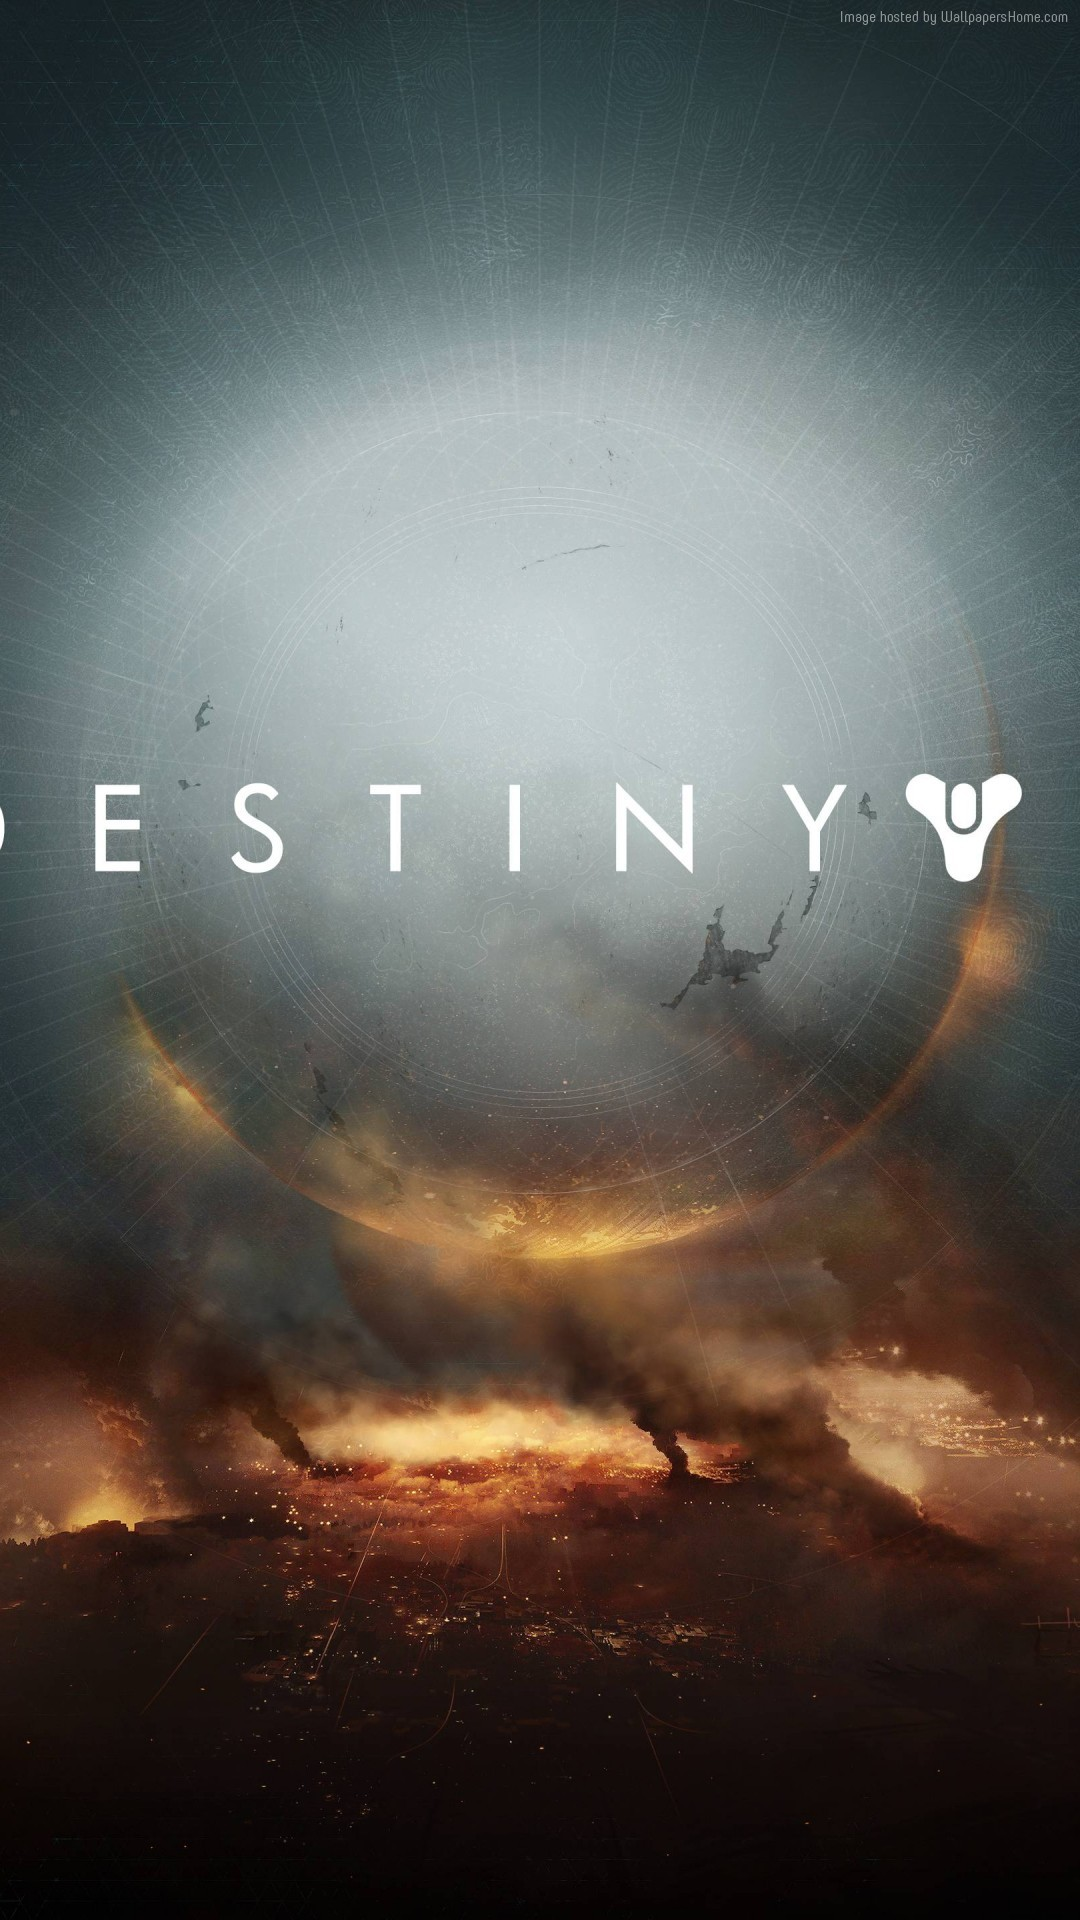 Hot Destiny 2 rumours point to PC release, major reboot   VG247